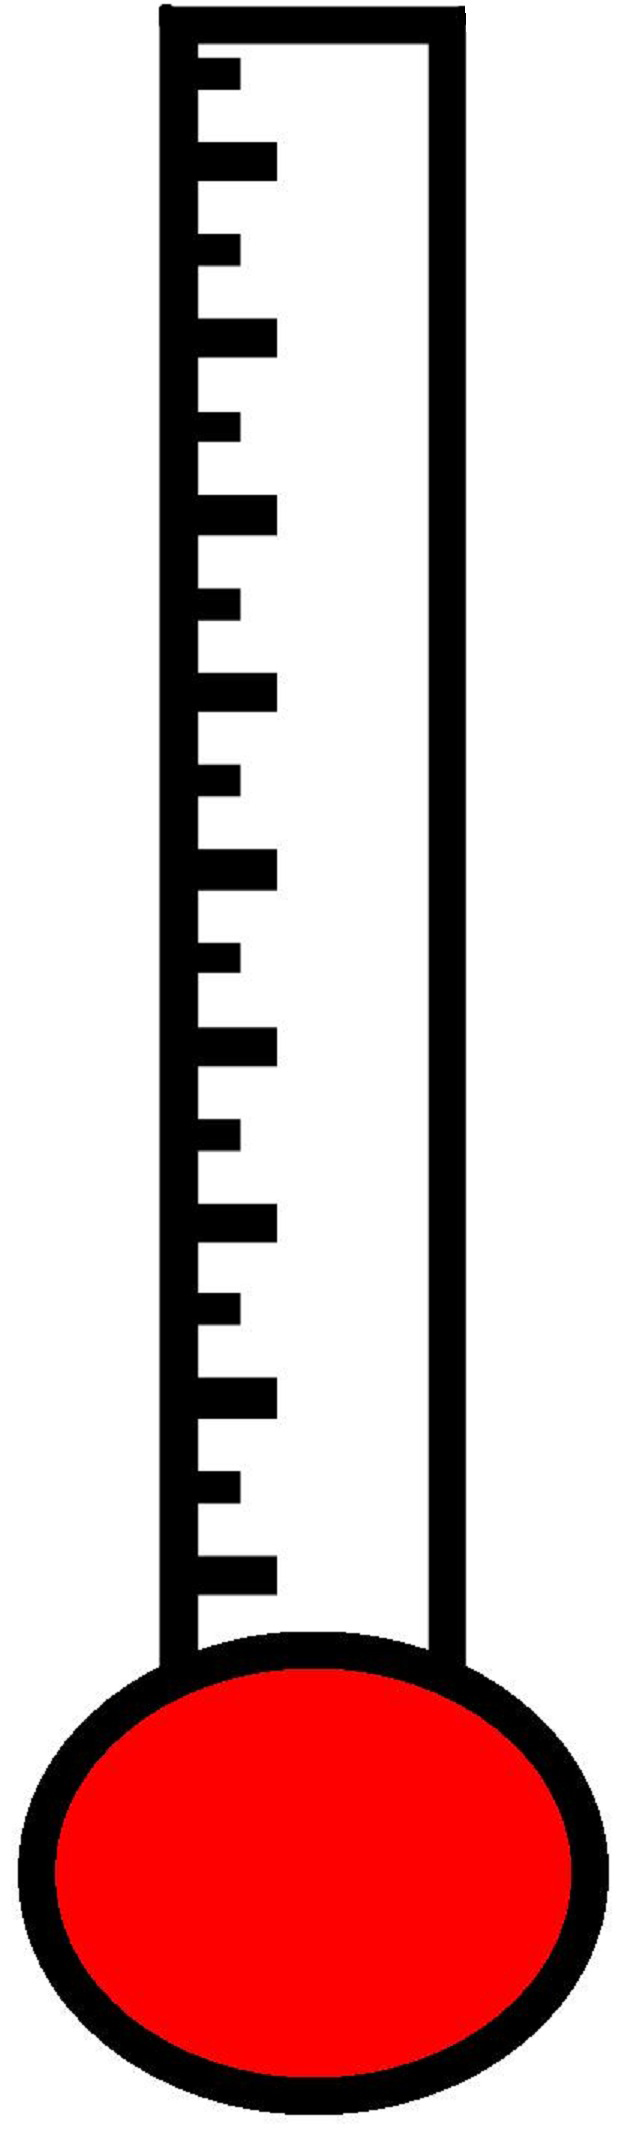 blank cartoon thermometer clipart best Printable Fundraising Thermometer School Fundraising Thermometer Clip Art